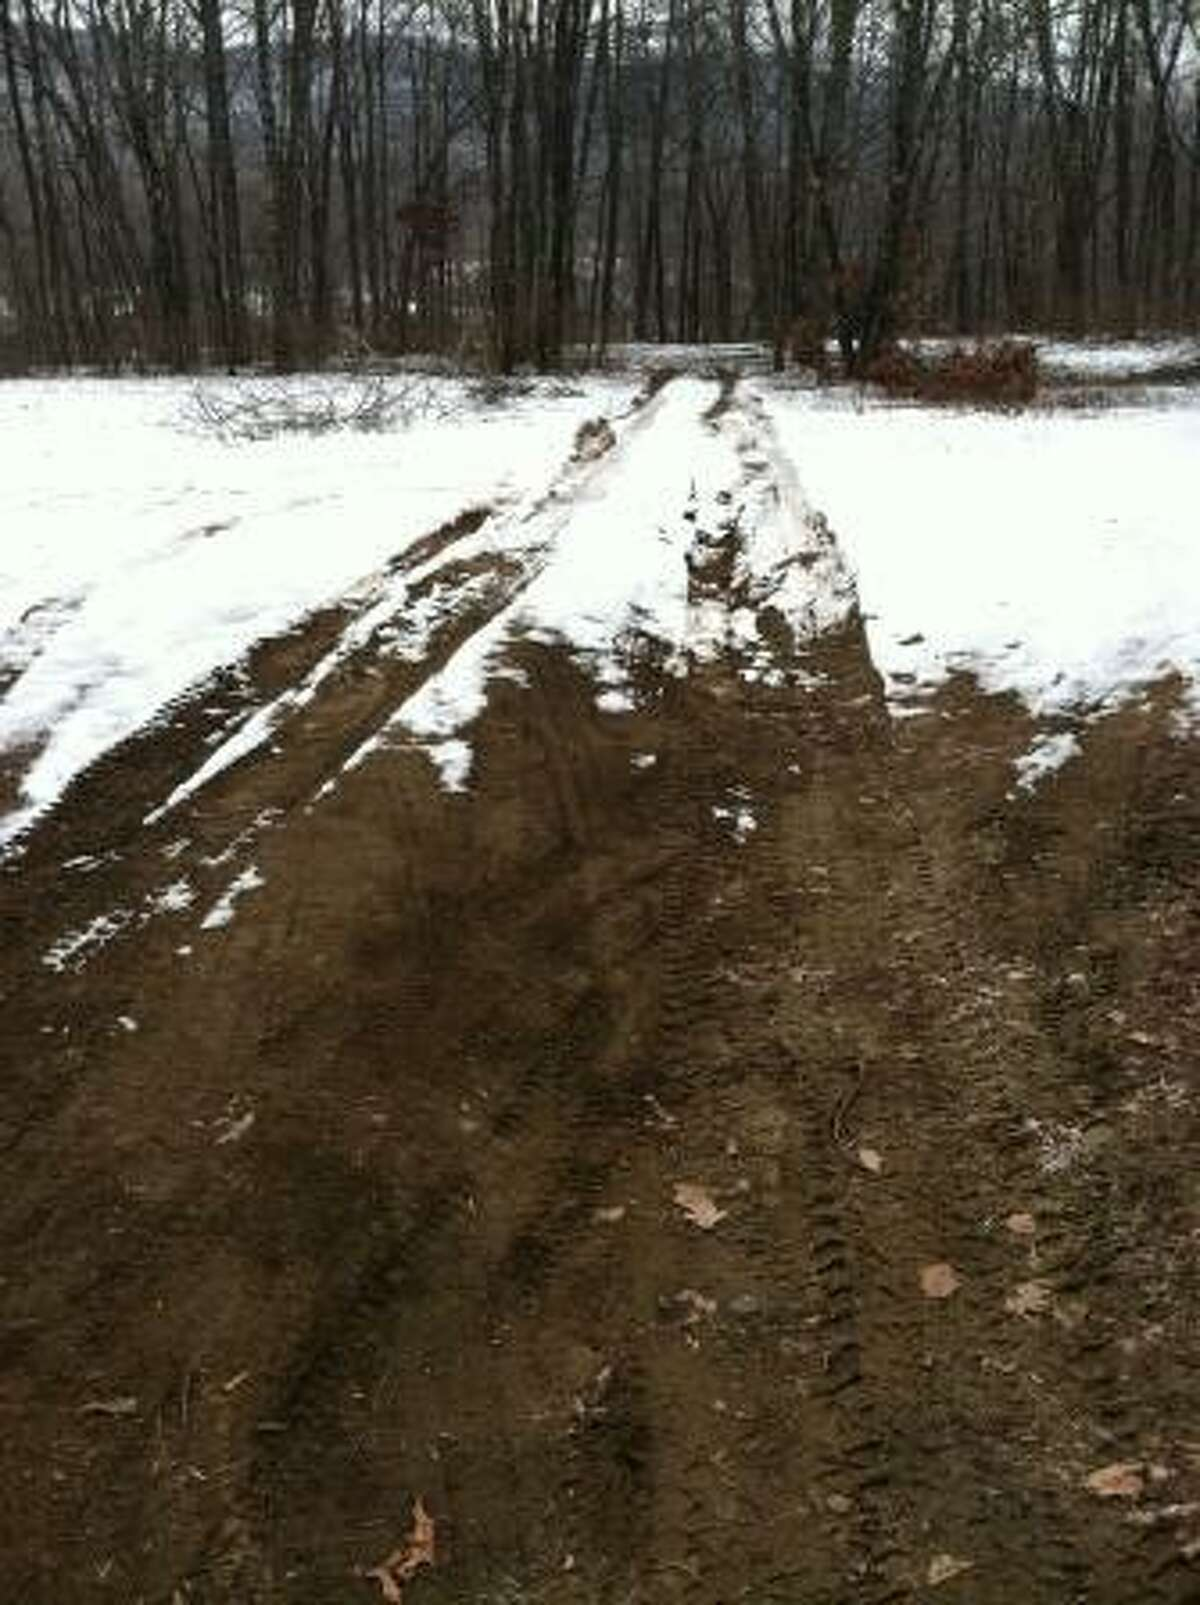 Tire tracks in the dirt and snow along River Road in Kent, in the area where the car of a missing woman from Cromwell was found Monday. Photo by Daniela Forte.